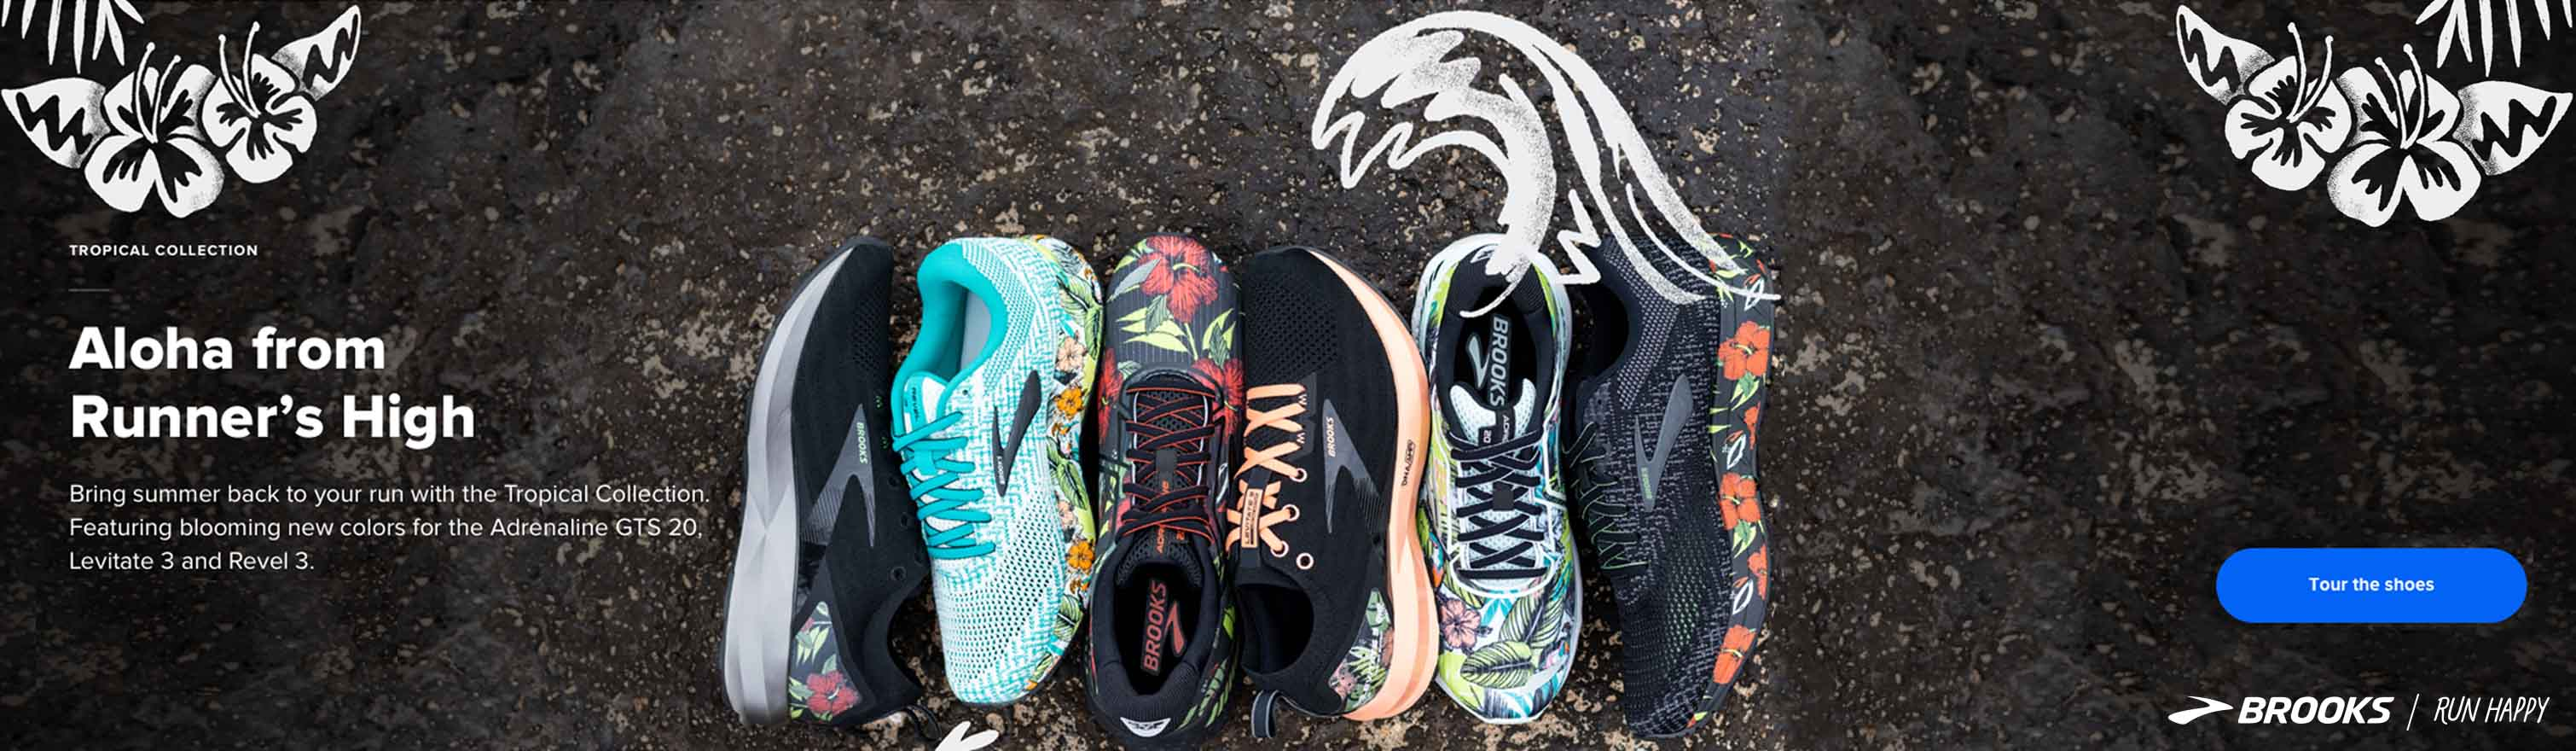 Shop the Brooks Tropical Collection